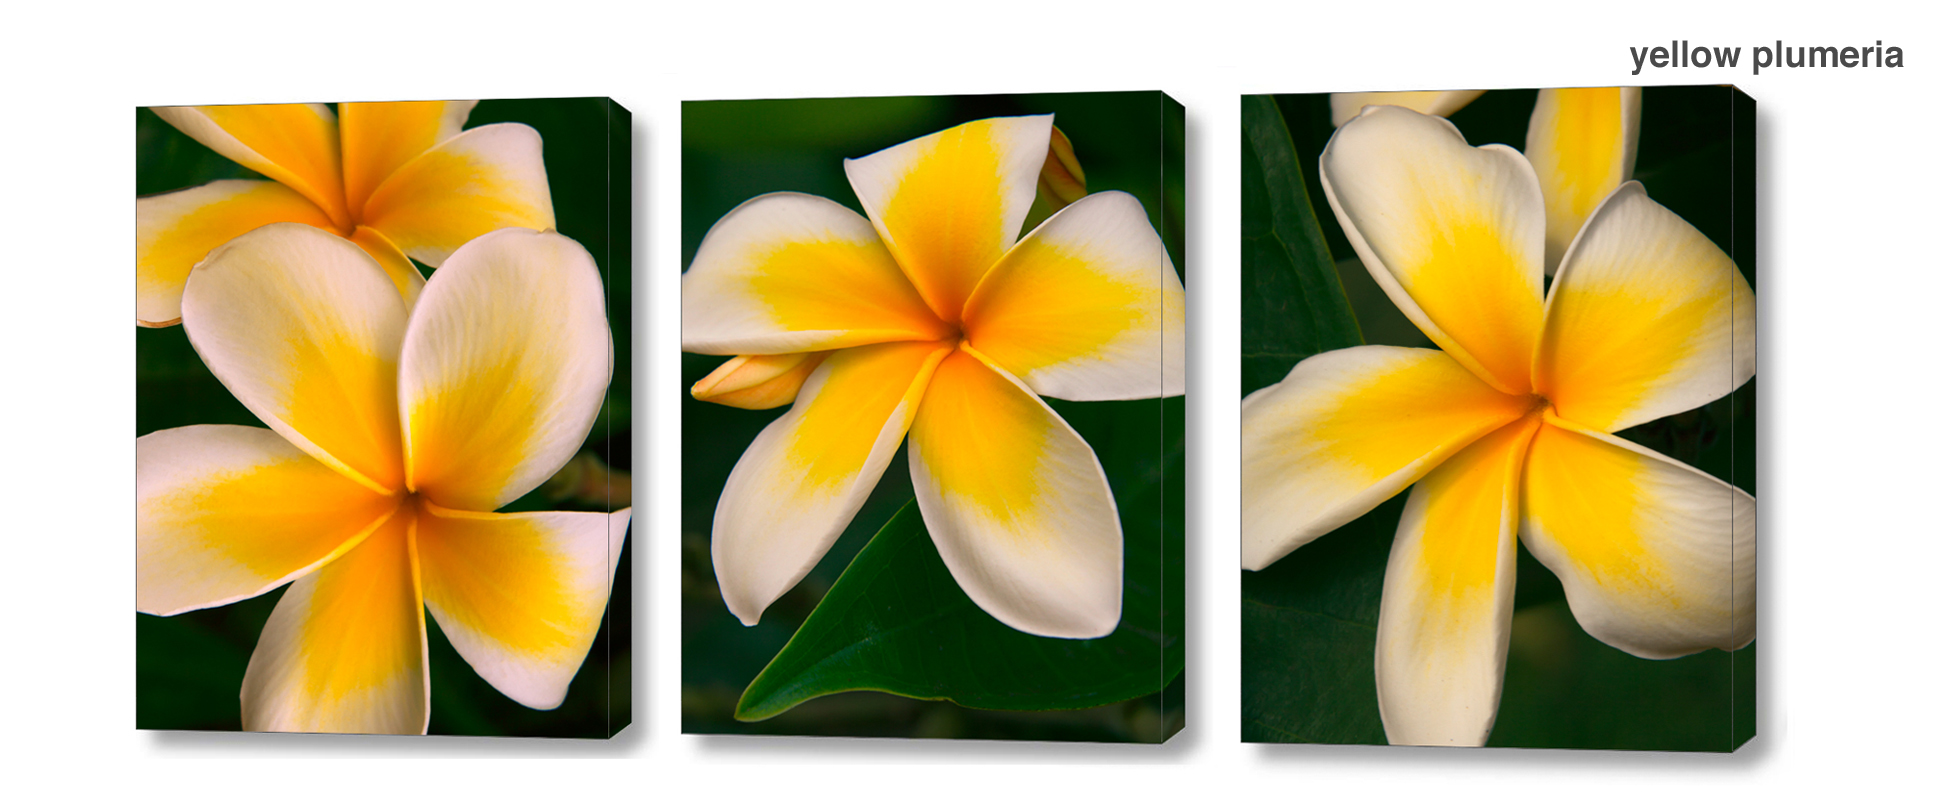 yellow plumeria series - Floral Series Wall Decor Macro Photography Matted & Giclée Canvas Prints